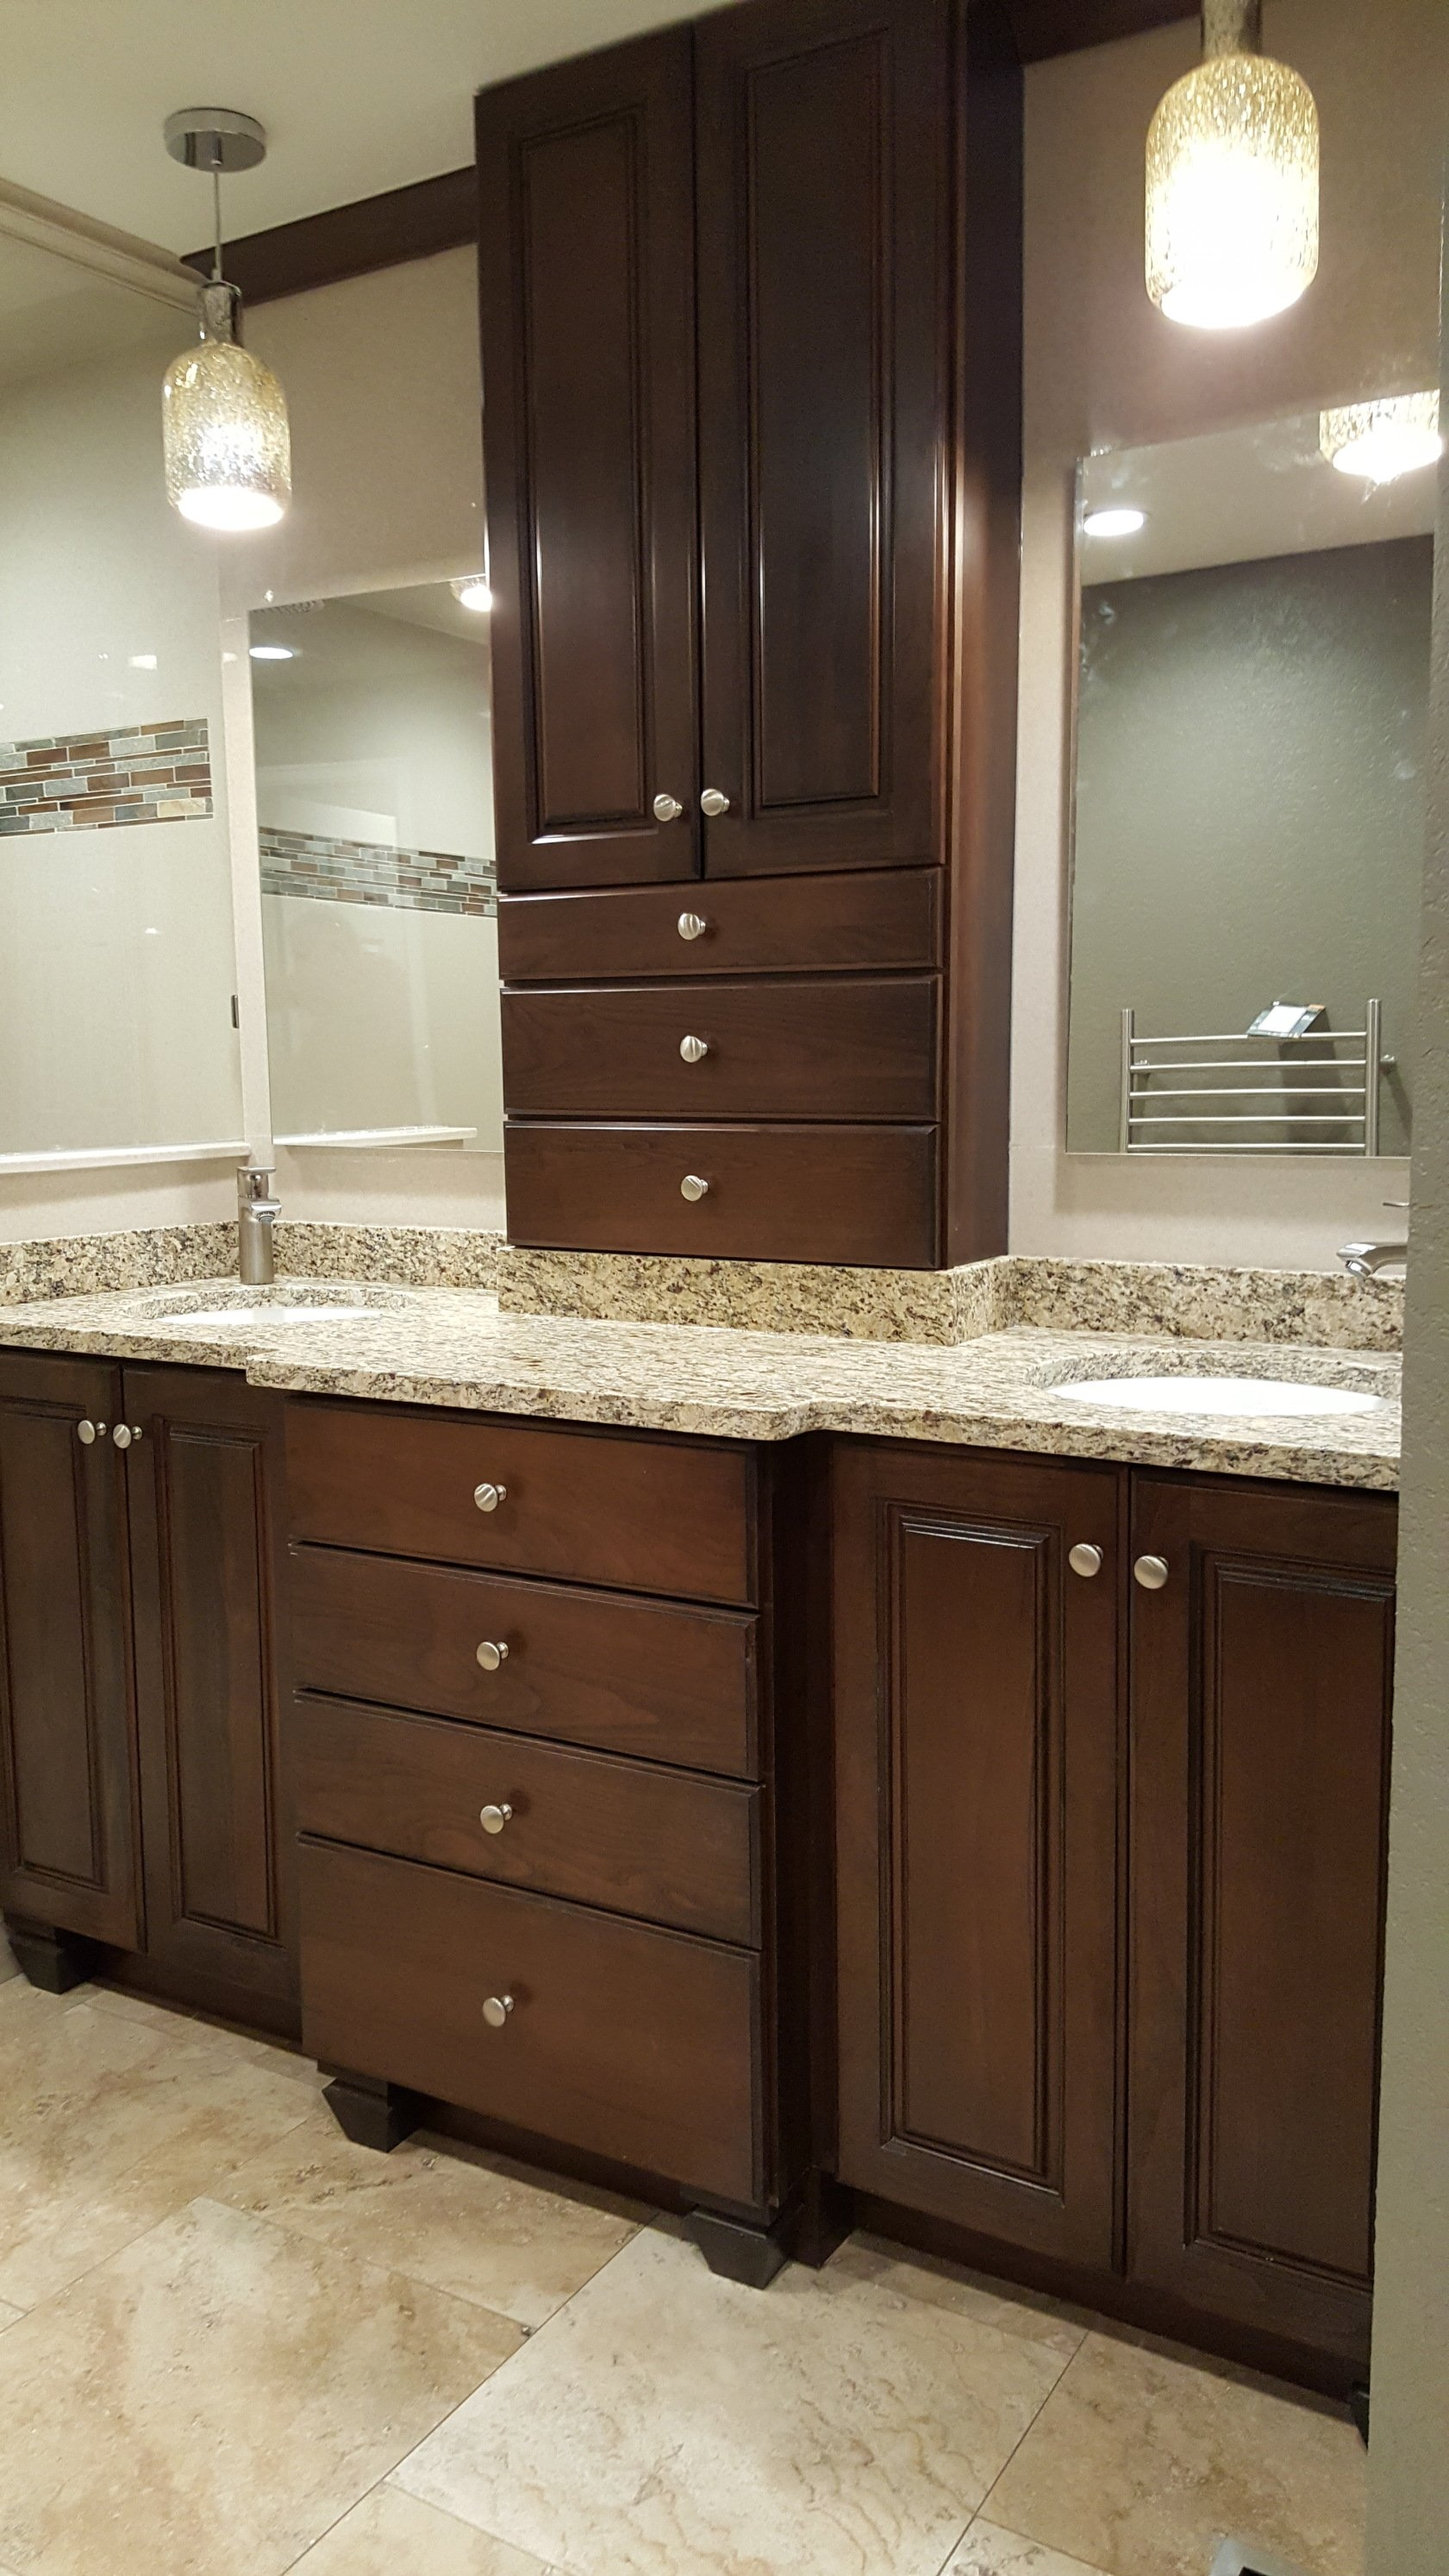 kitchen sinks denver best commercial degreaser marble concepts co